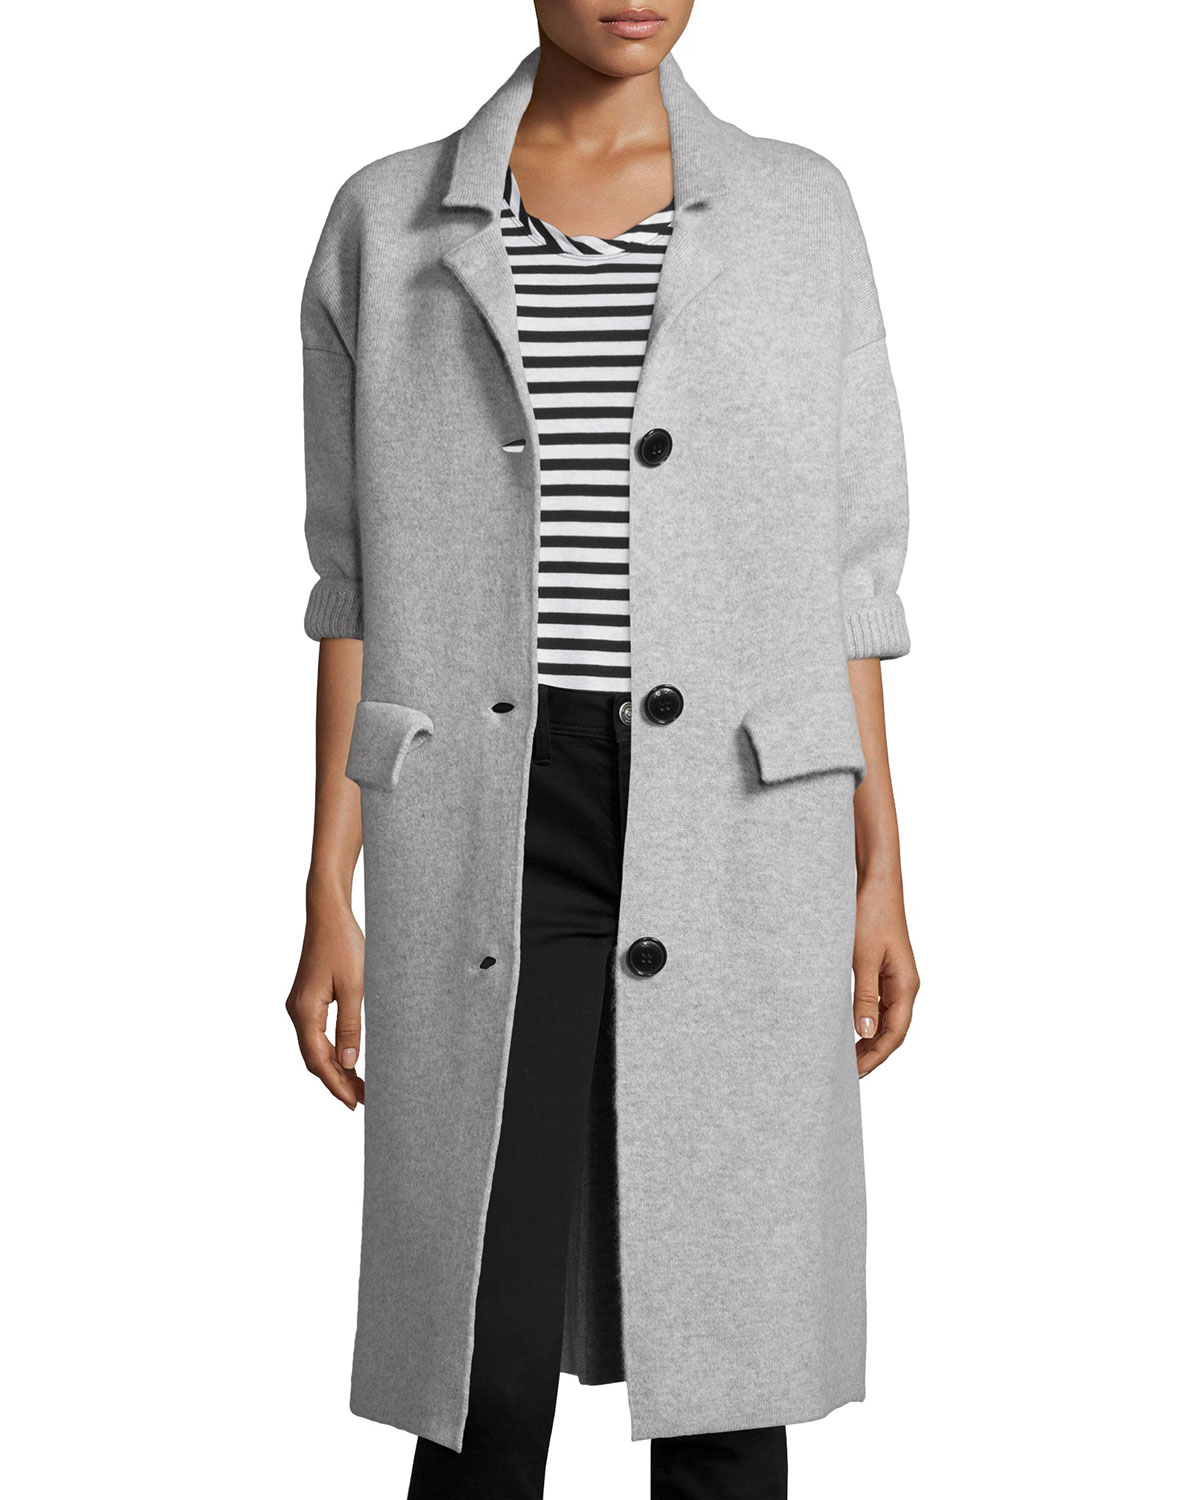 Burberry brit Three-button Maxi Cardigan Coat in Gray | Lyst